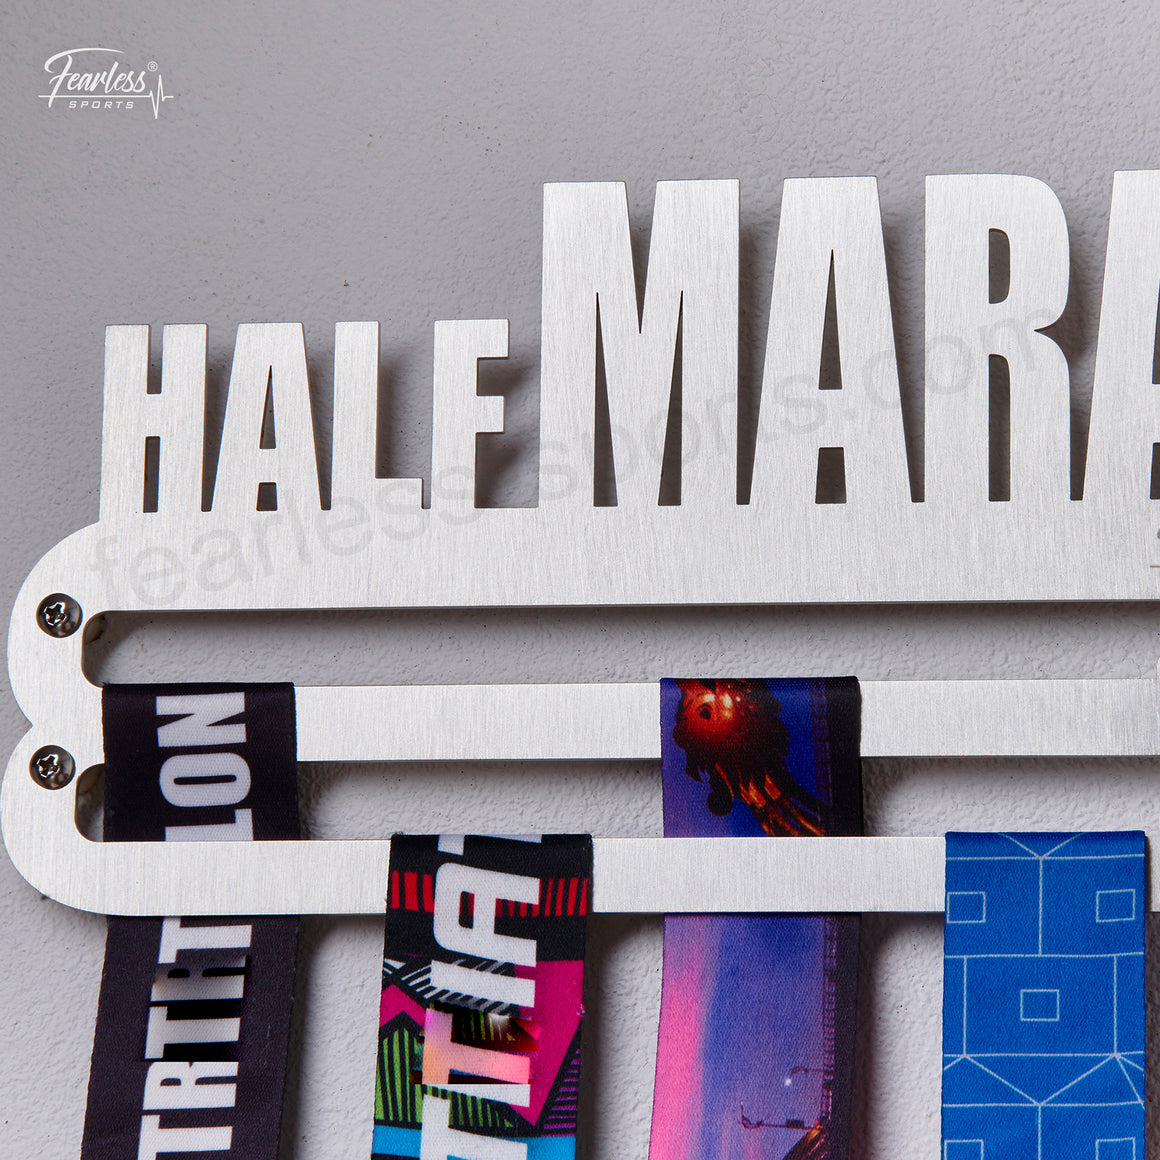 Half Marathon Stainless Steel Sport Medal Display Hanger Medal Organizer ITM./ART.5176 - Fearless Sports